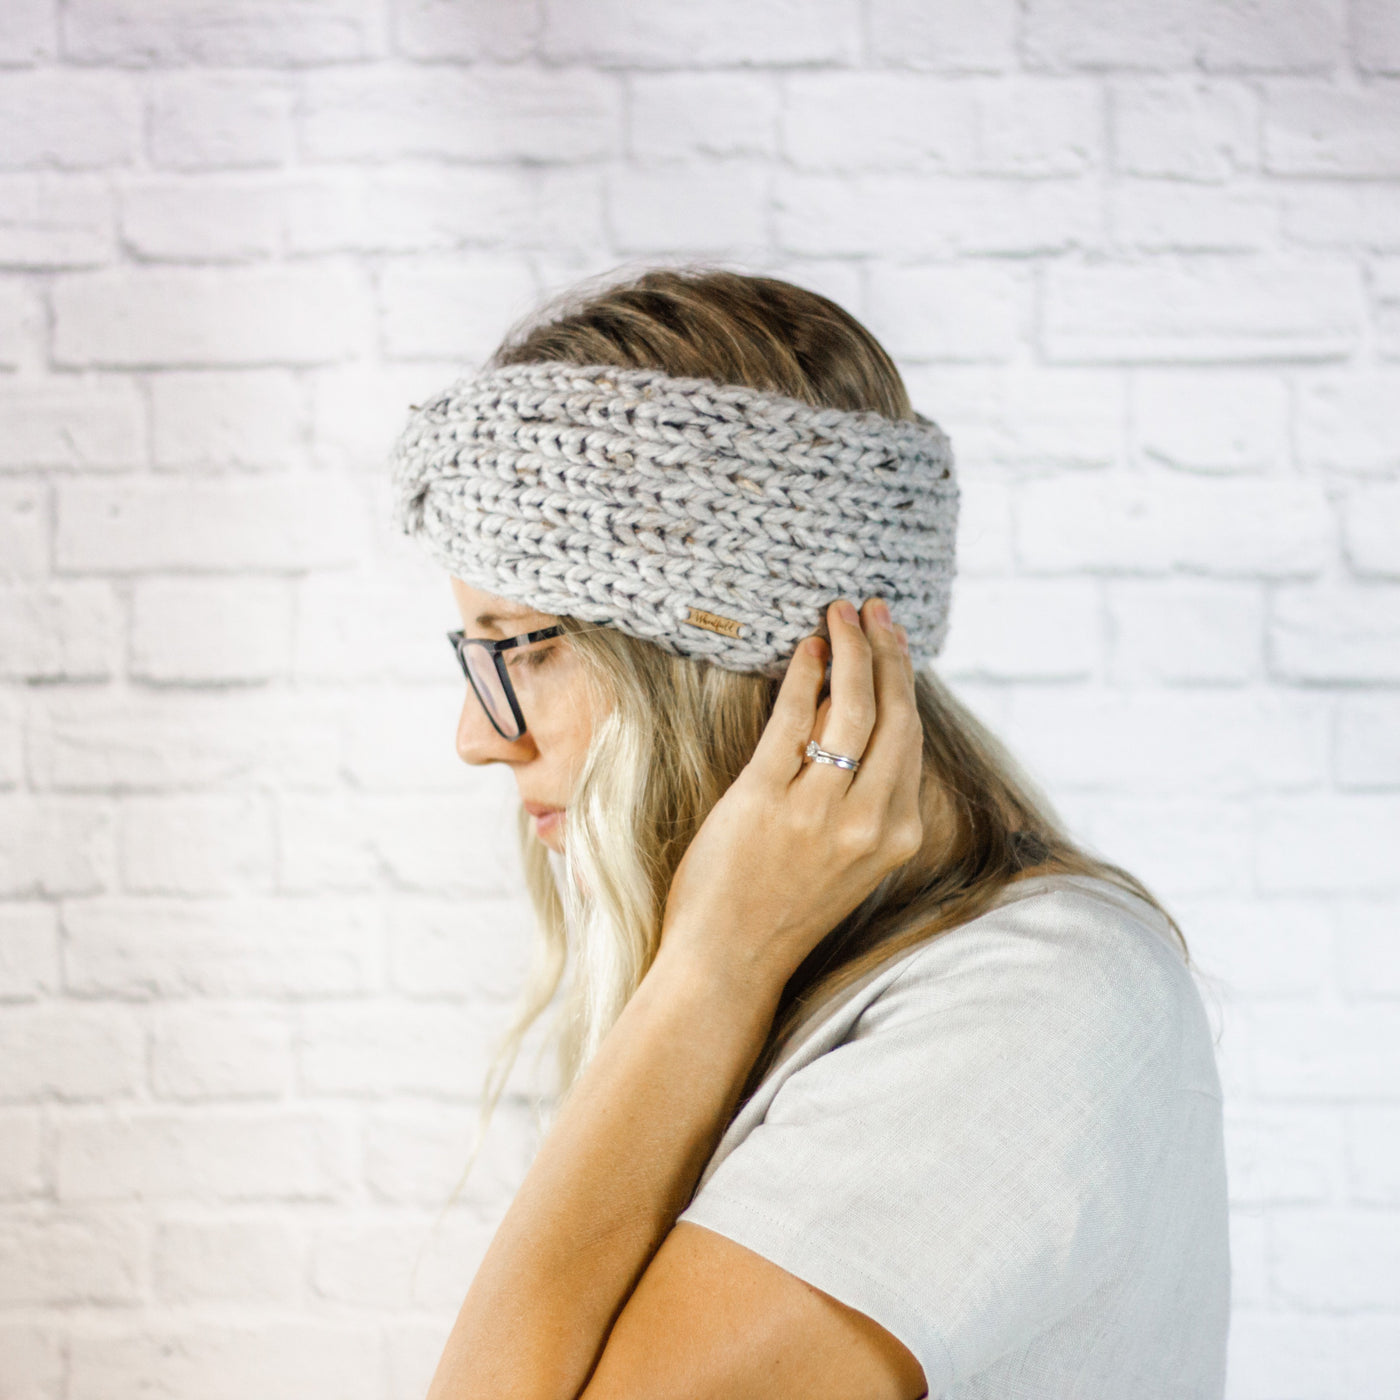 Wheatfield Knitwear Headbands Womens Wide Winter Ear Warmer Twisted Turban Headband in Grey Marble